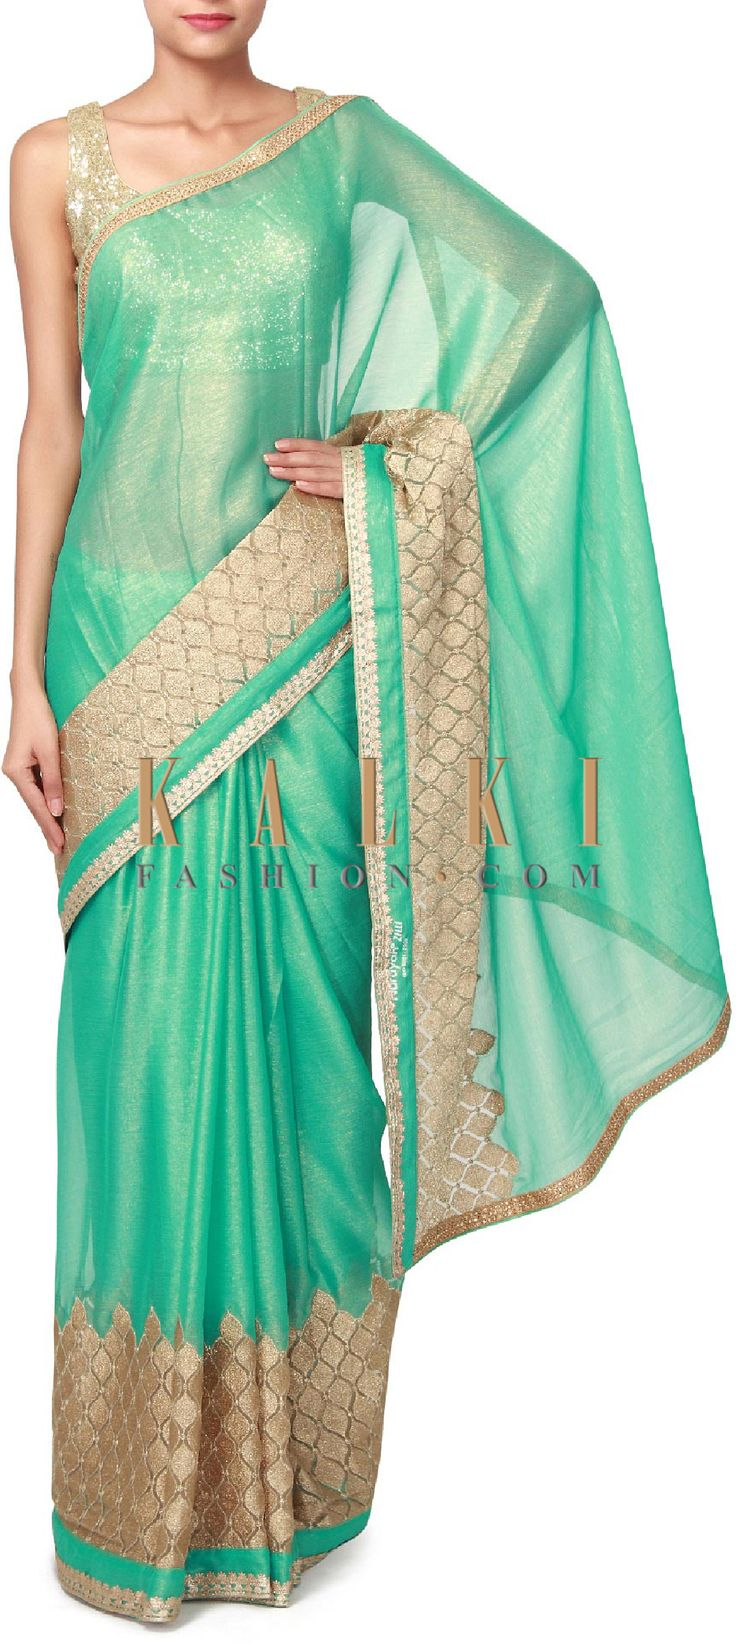 Buy Online from the link below. We ship worldwide (Free Shipping over US$100). Product SKU - 306185. Product Price - $119.00. Product link - http://www.kalkifashion.com/sea-green-saree-adorn-in-zari-weave-embroidery-only-on-kalki.html